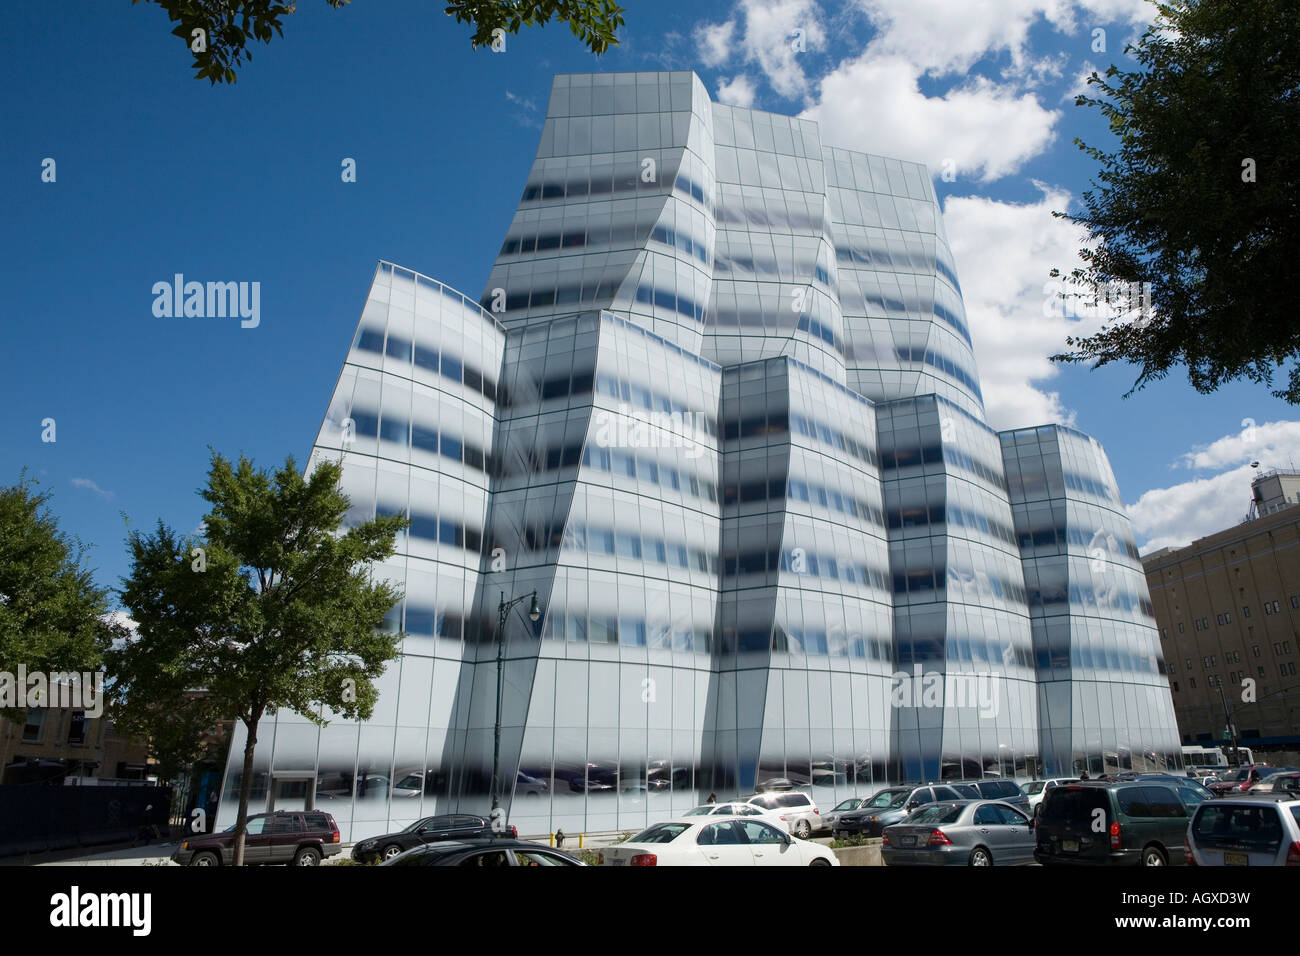 Frank Gehry Manhattan debut is IAC Building on West Side Highway for Barry Diller - Stock Image